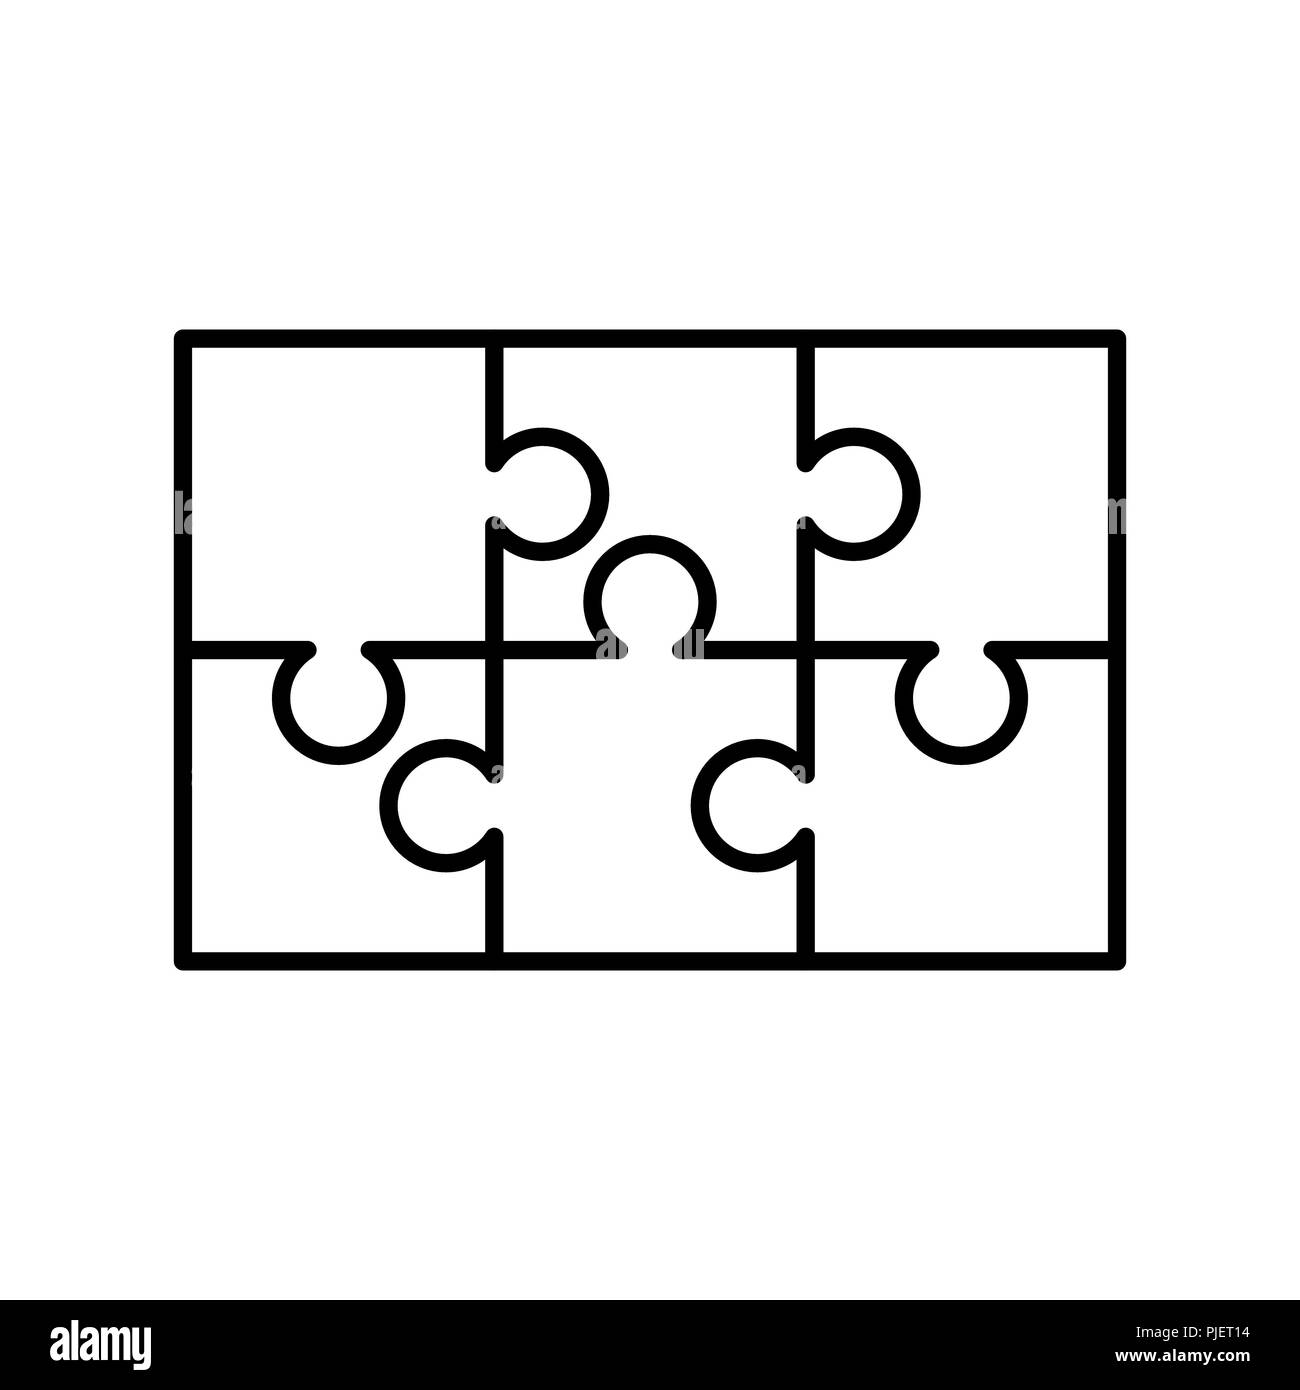 6 White Puzzles Pieces Arranged In A Rectangle Shape Jigsaw Puzzle